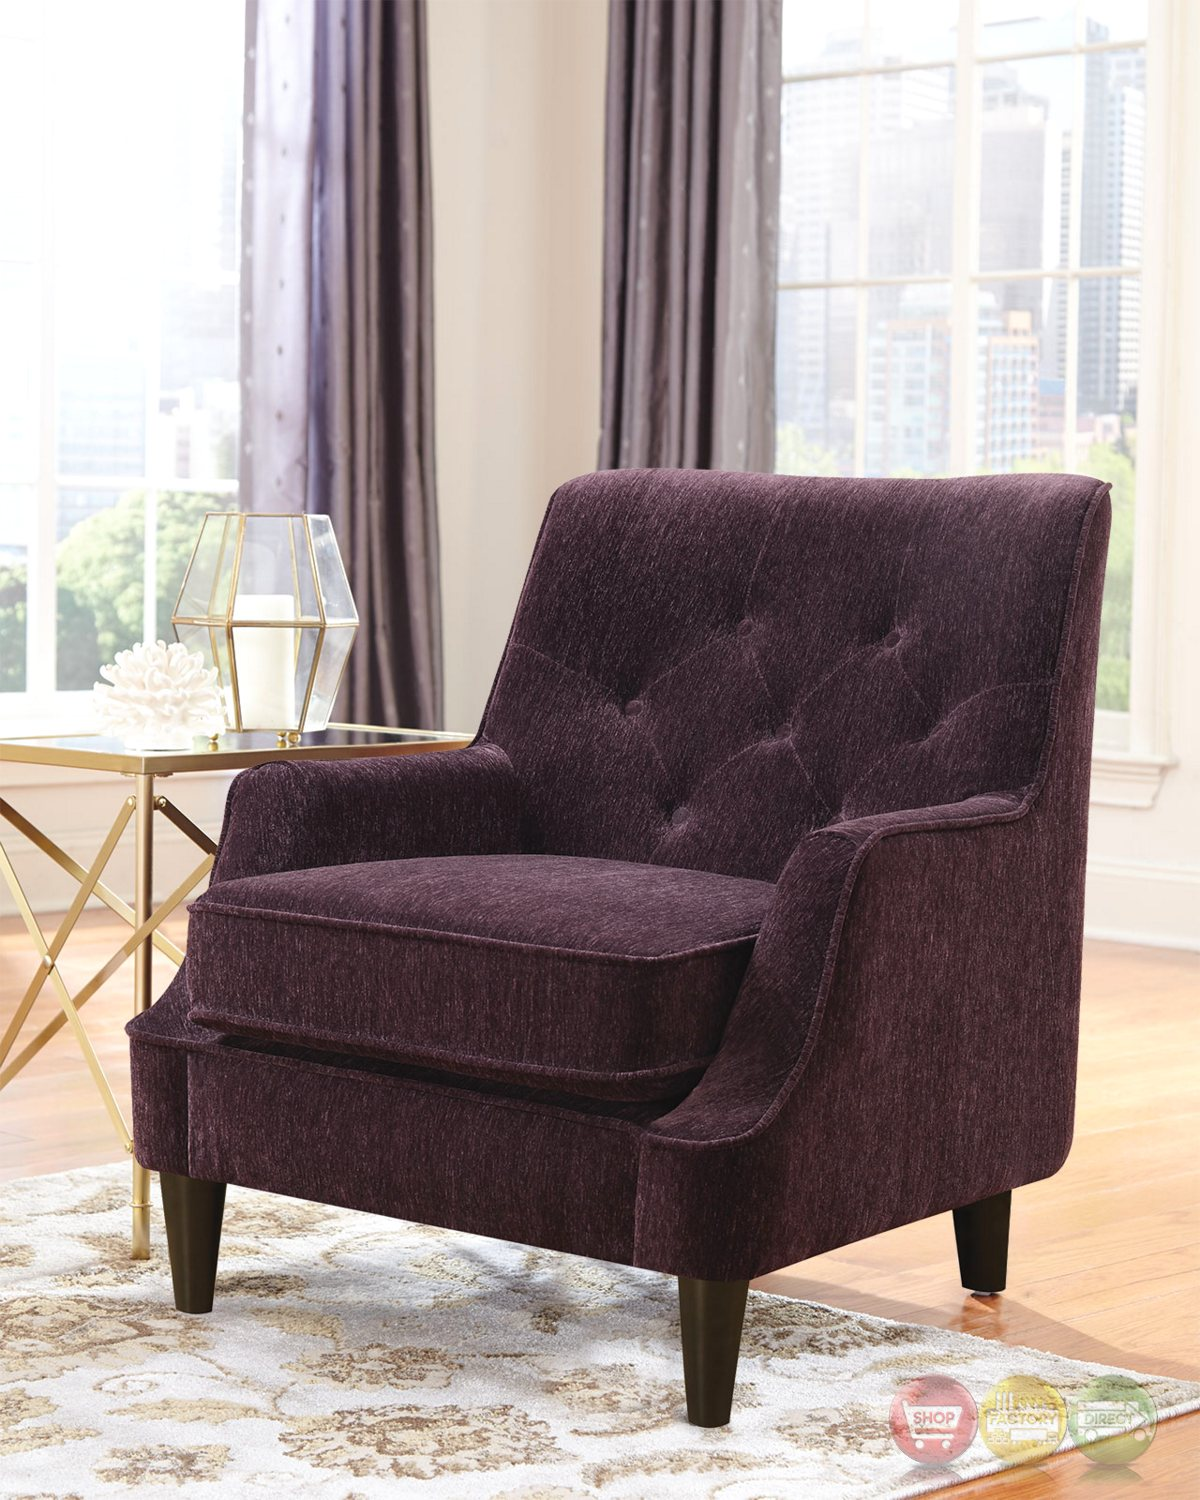 purple accent chair two seater chairs uk eggplant button tufted with welted trim